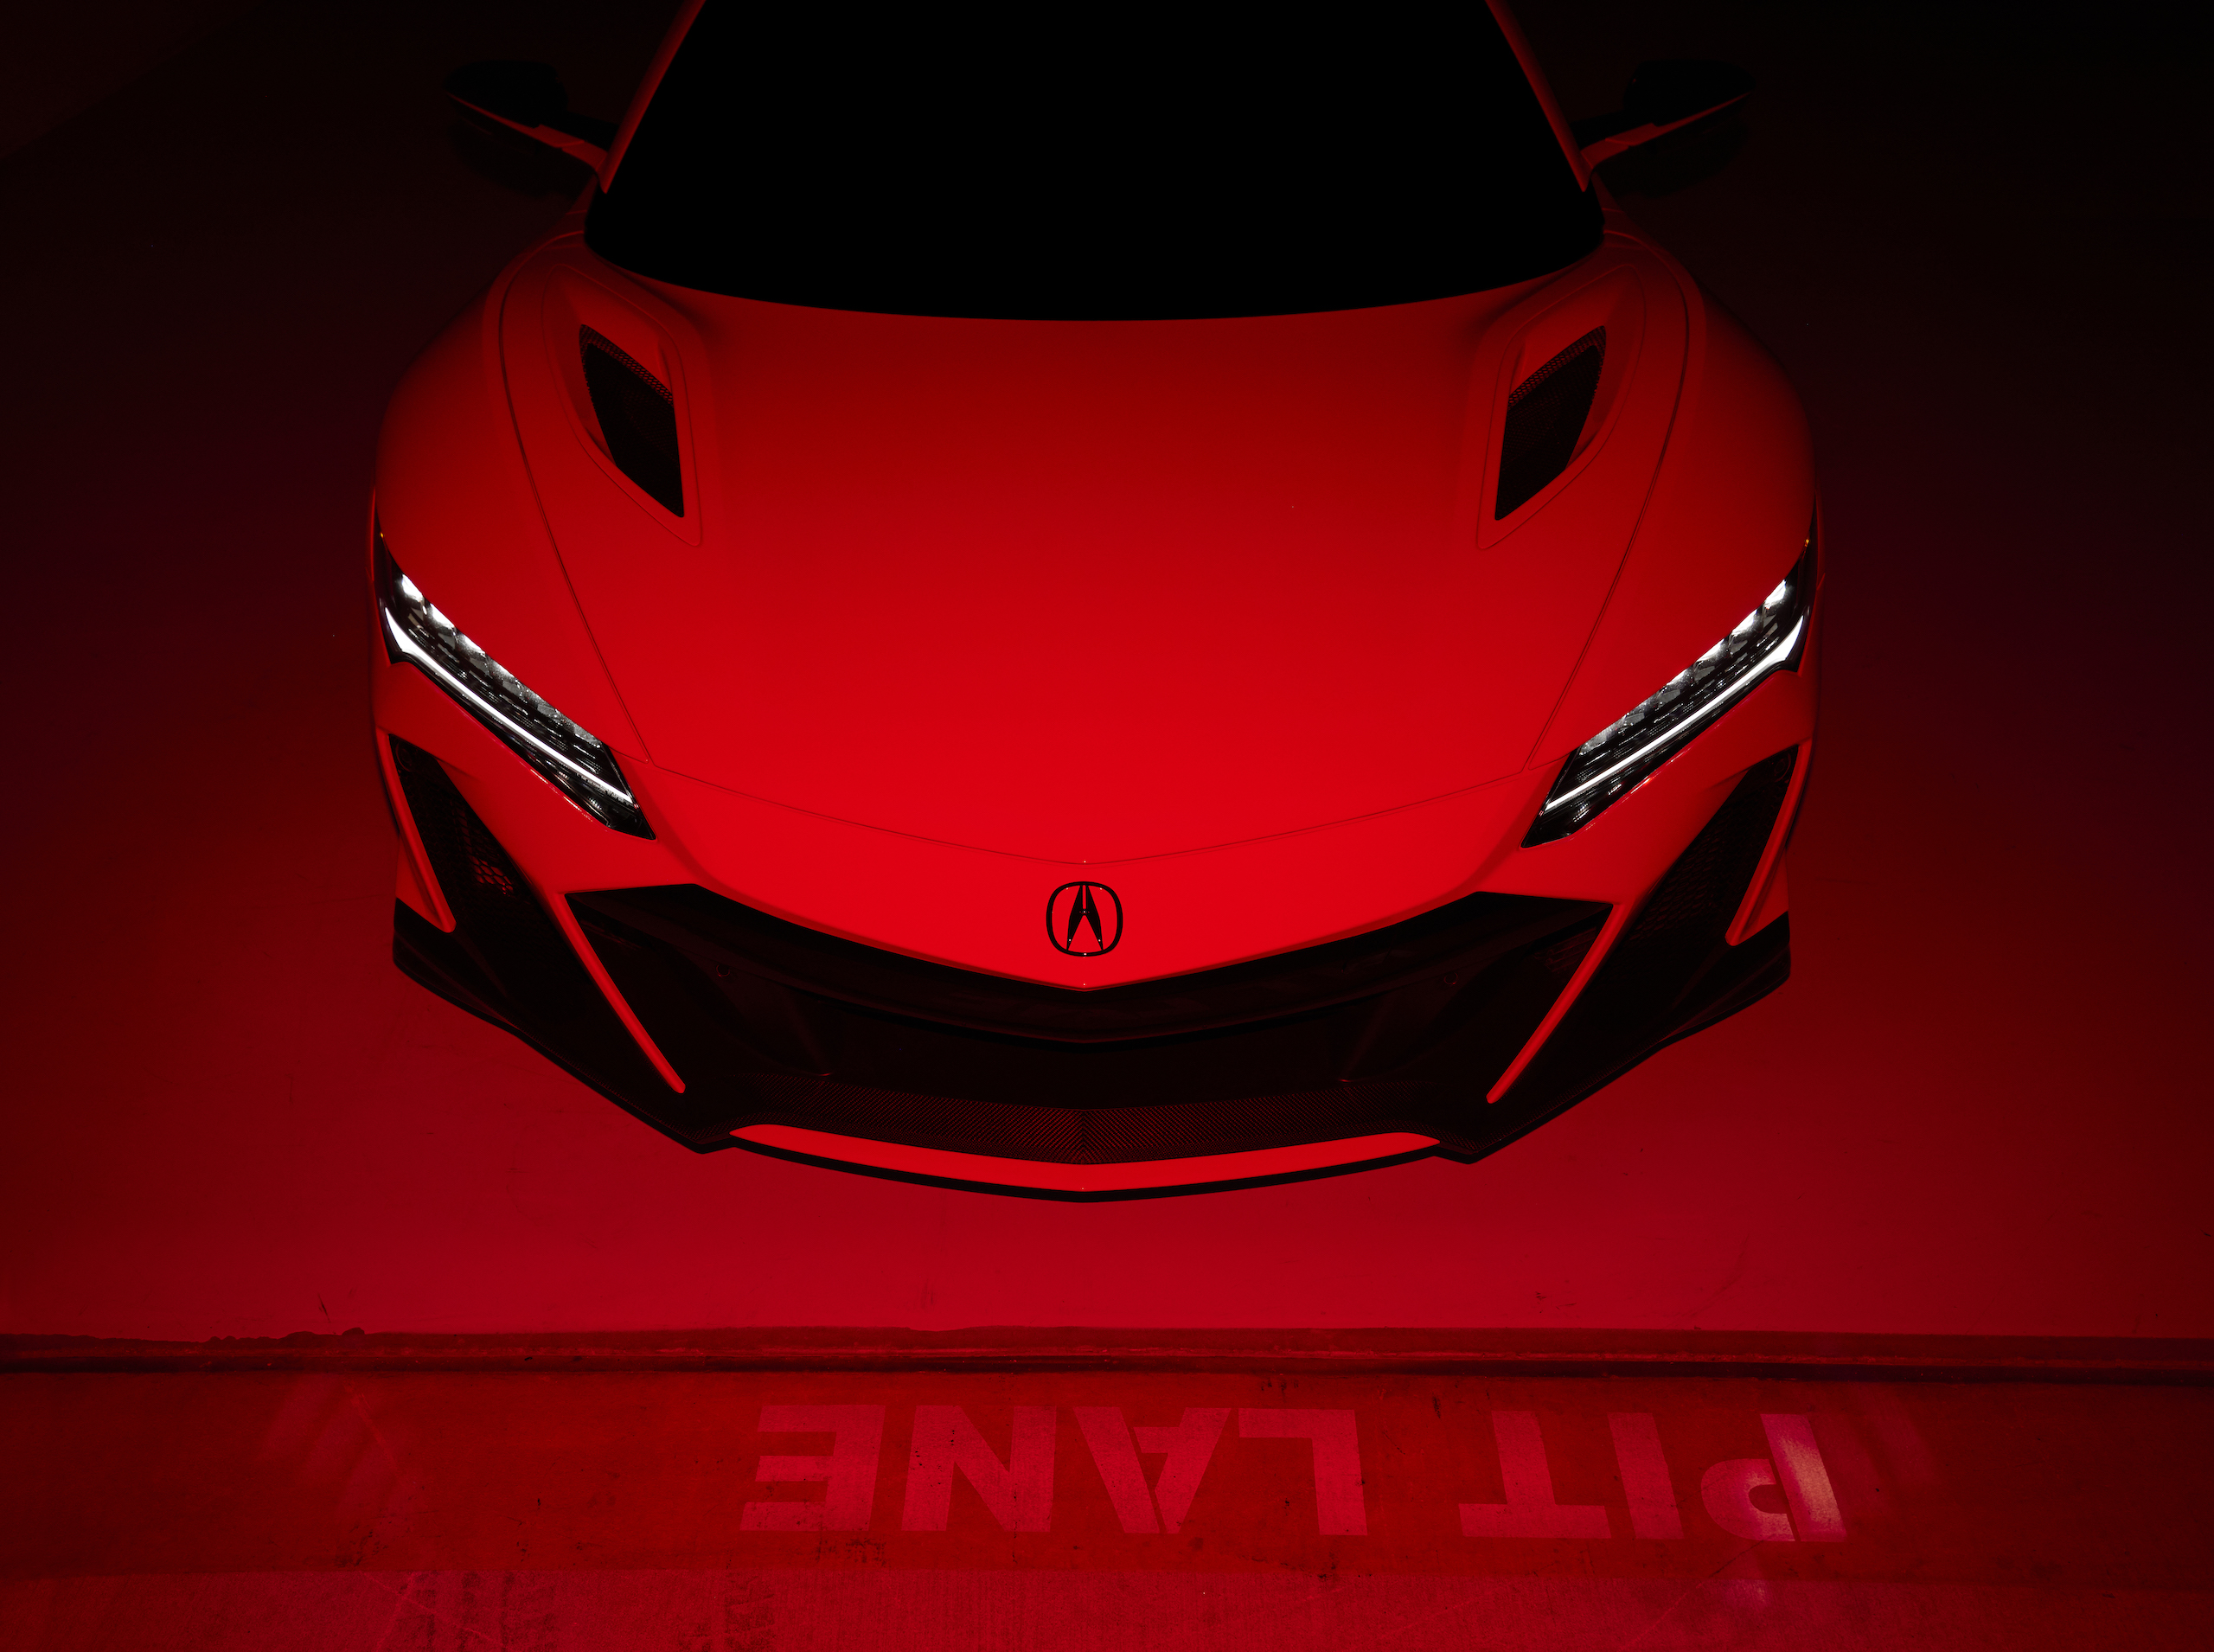 2022 Acura NSX Type S front red light